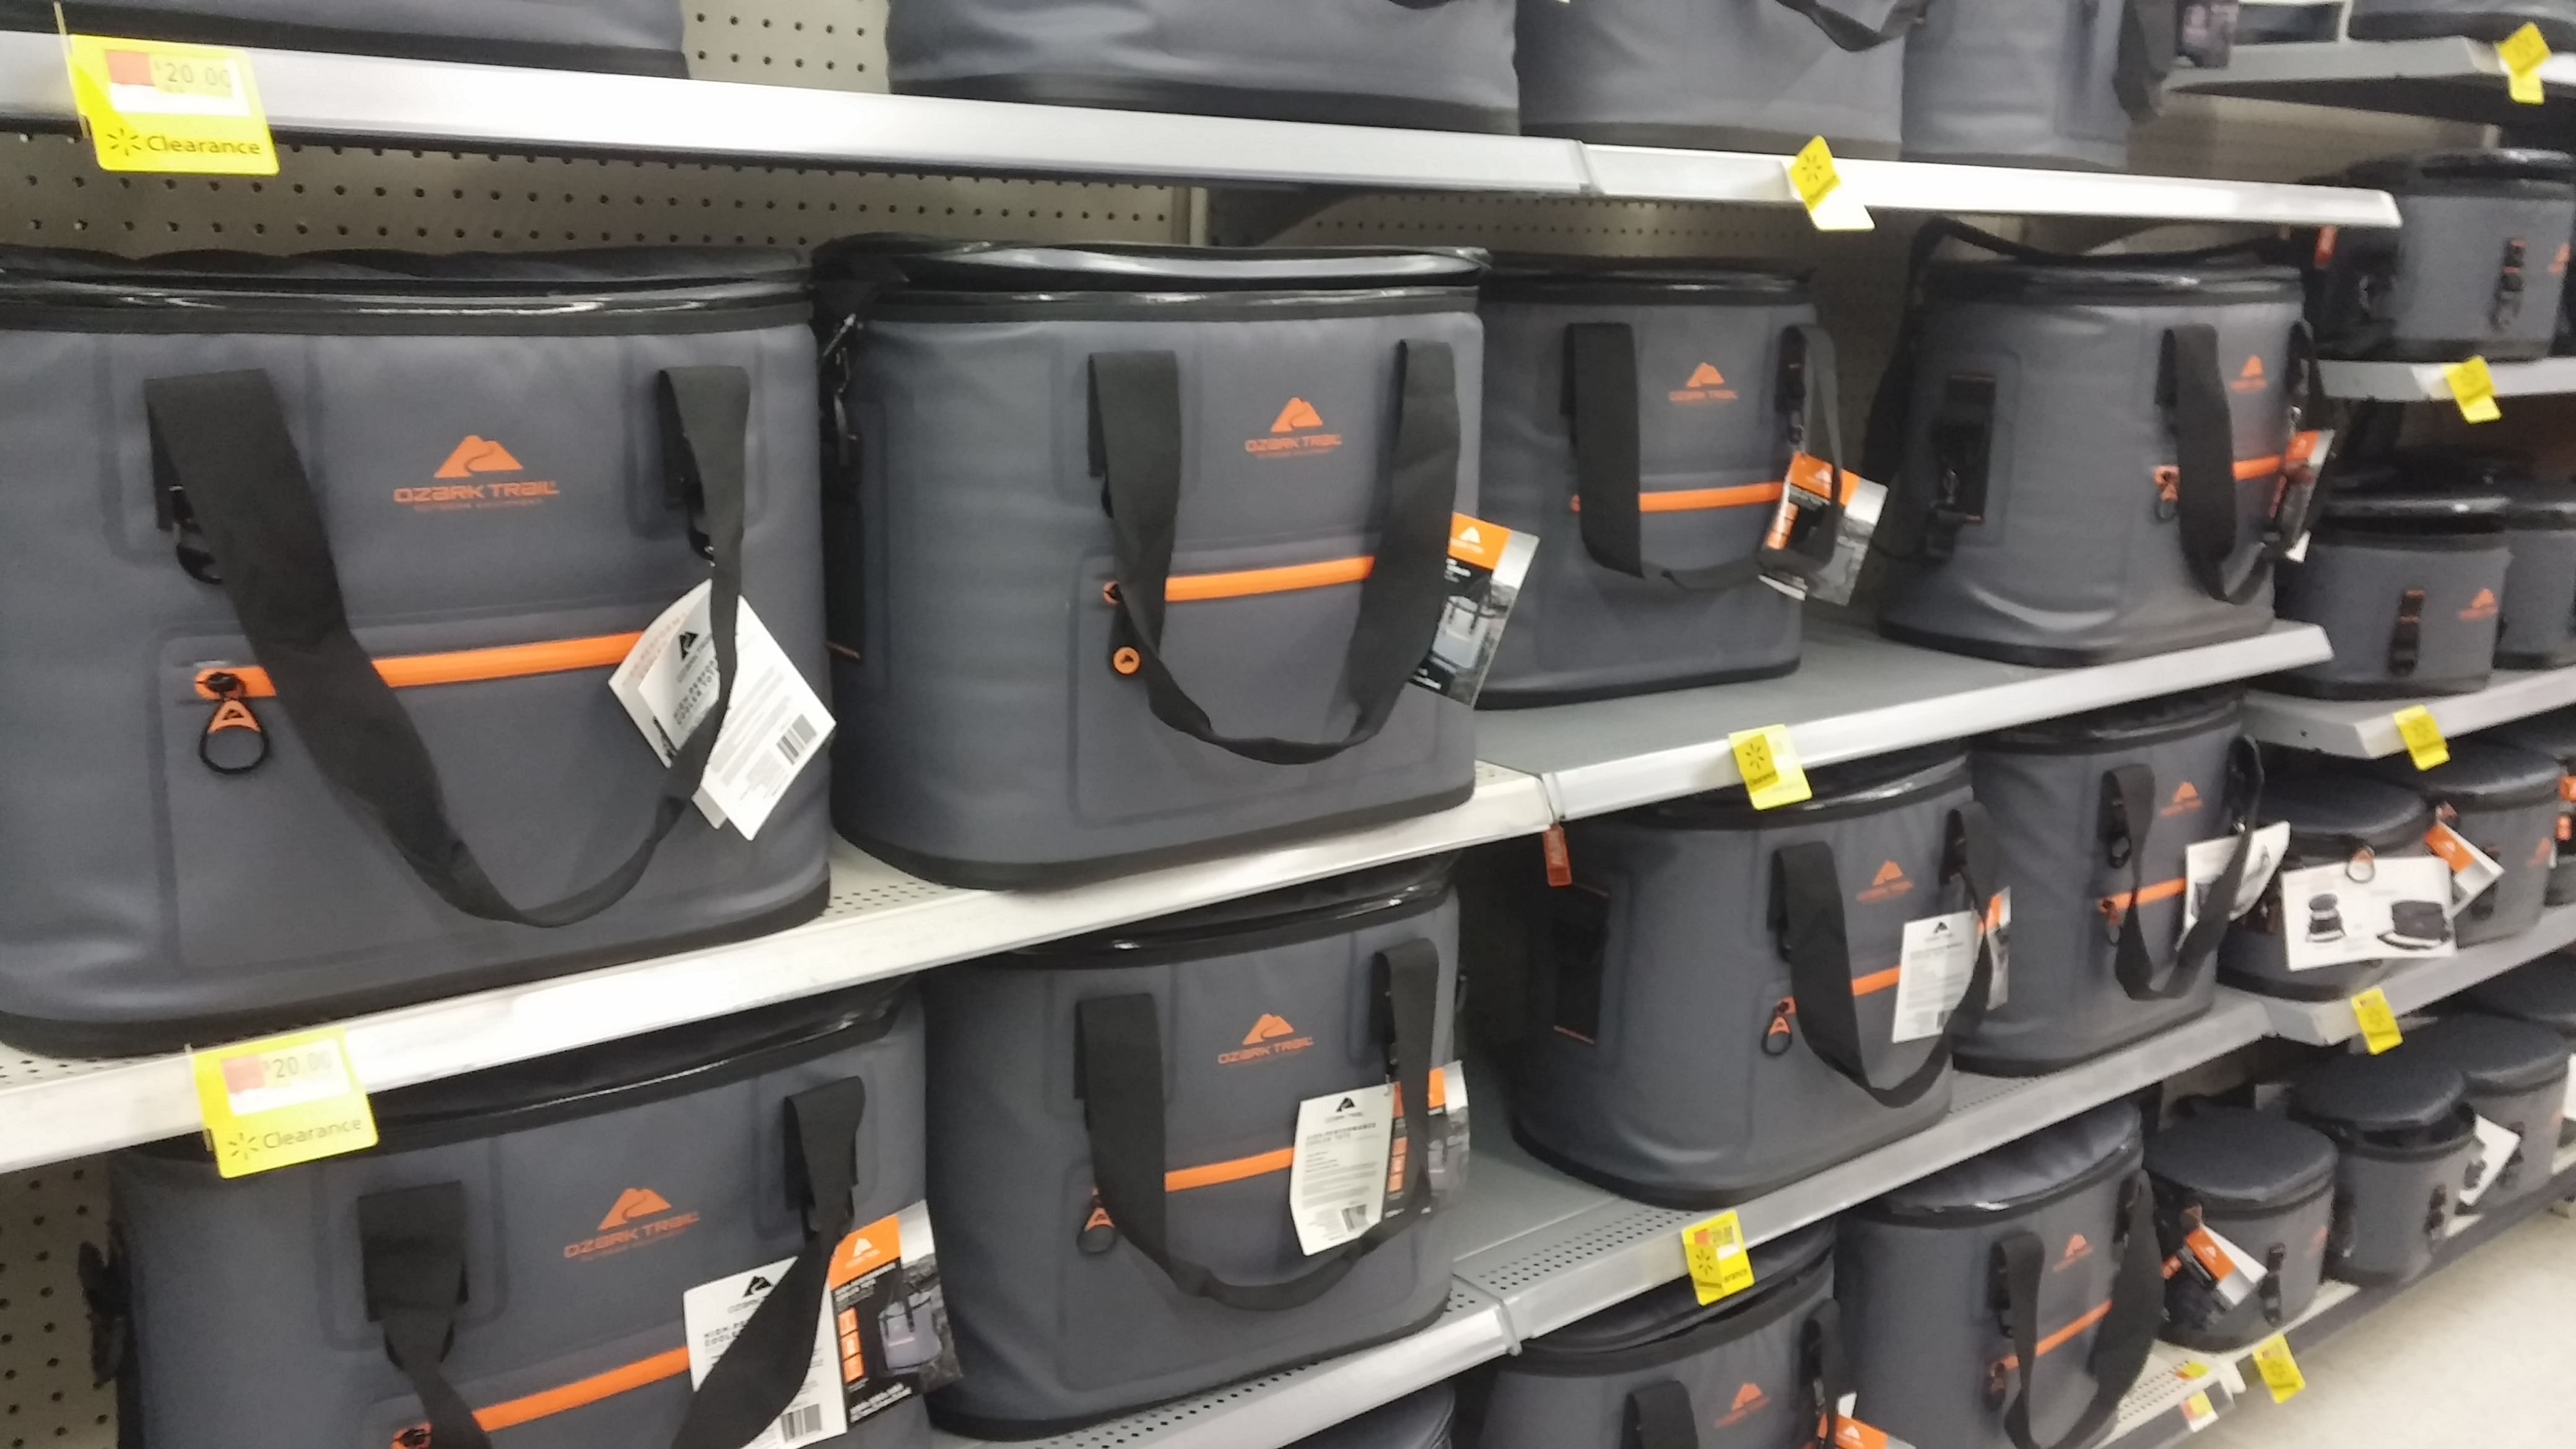 Ozark Trail Jumbo Cooler -  $10 to $35 YMMV Walmart In-Store Only